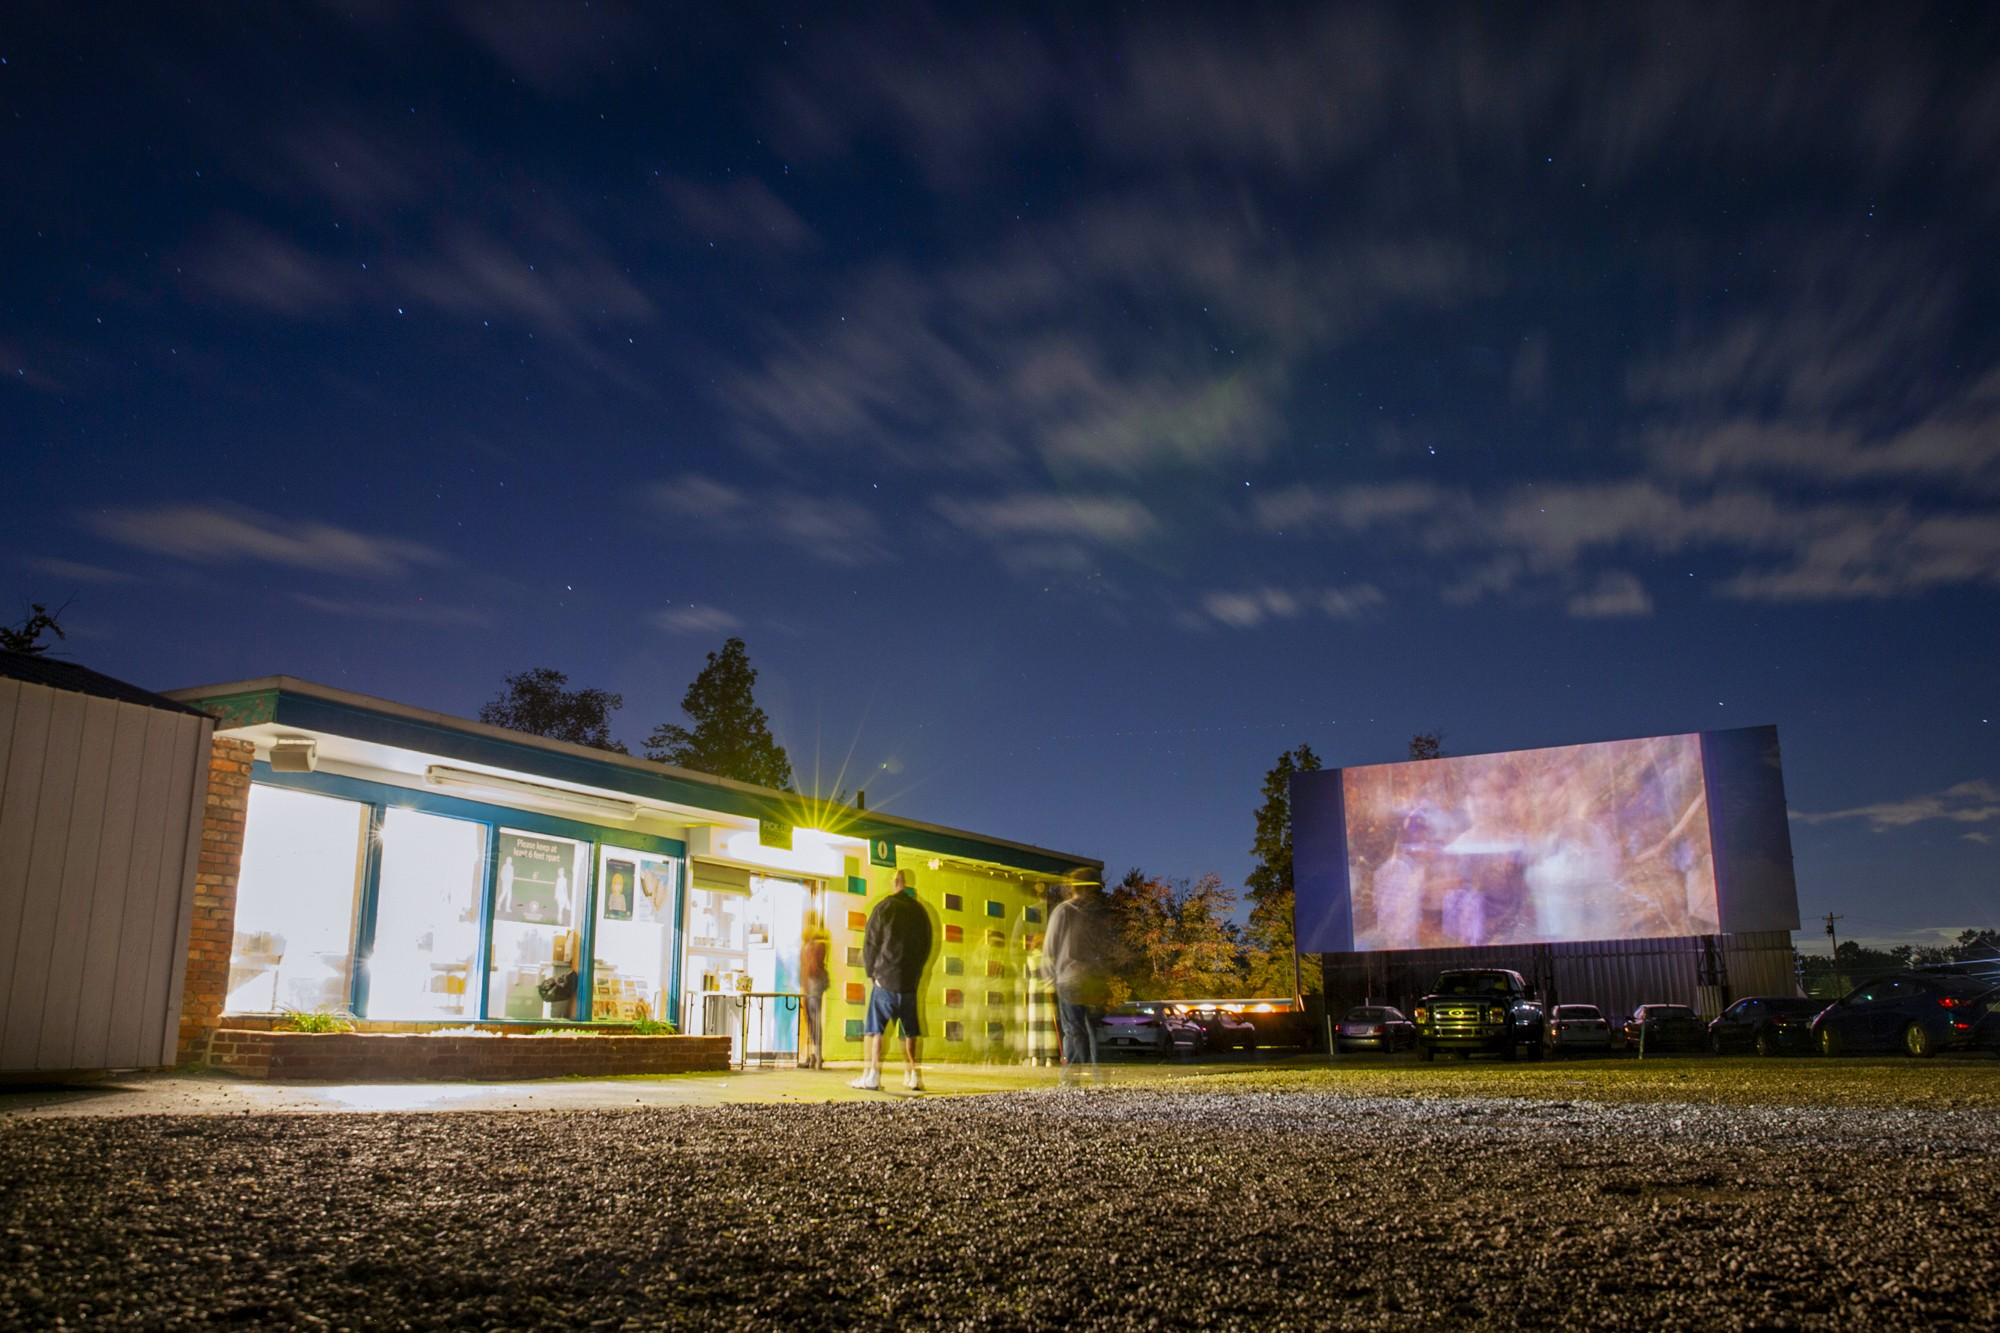 The Starlite drive-in screens 'Hocus Pocus' and the live action 'The Addams Family' on Sunday, October 4, 2020. The drive-in of Amelia, OH celebrates its 73rd anniversary this year.